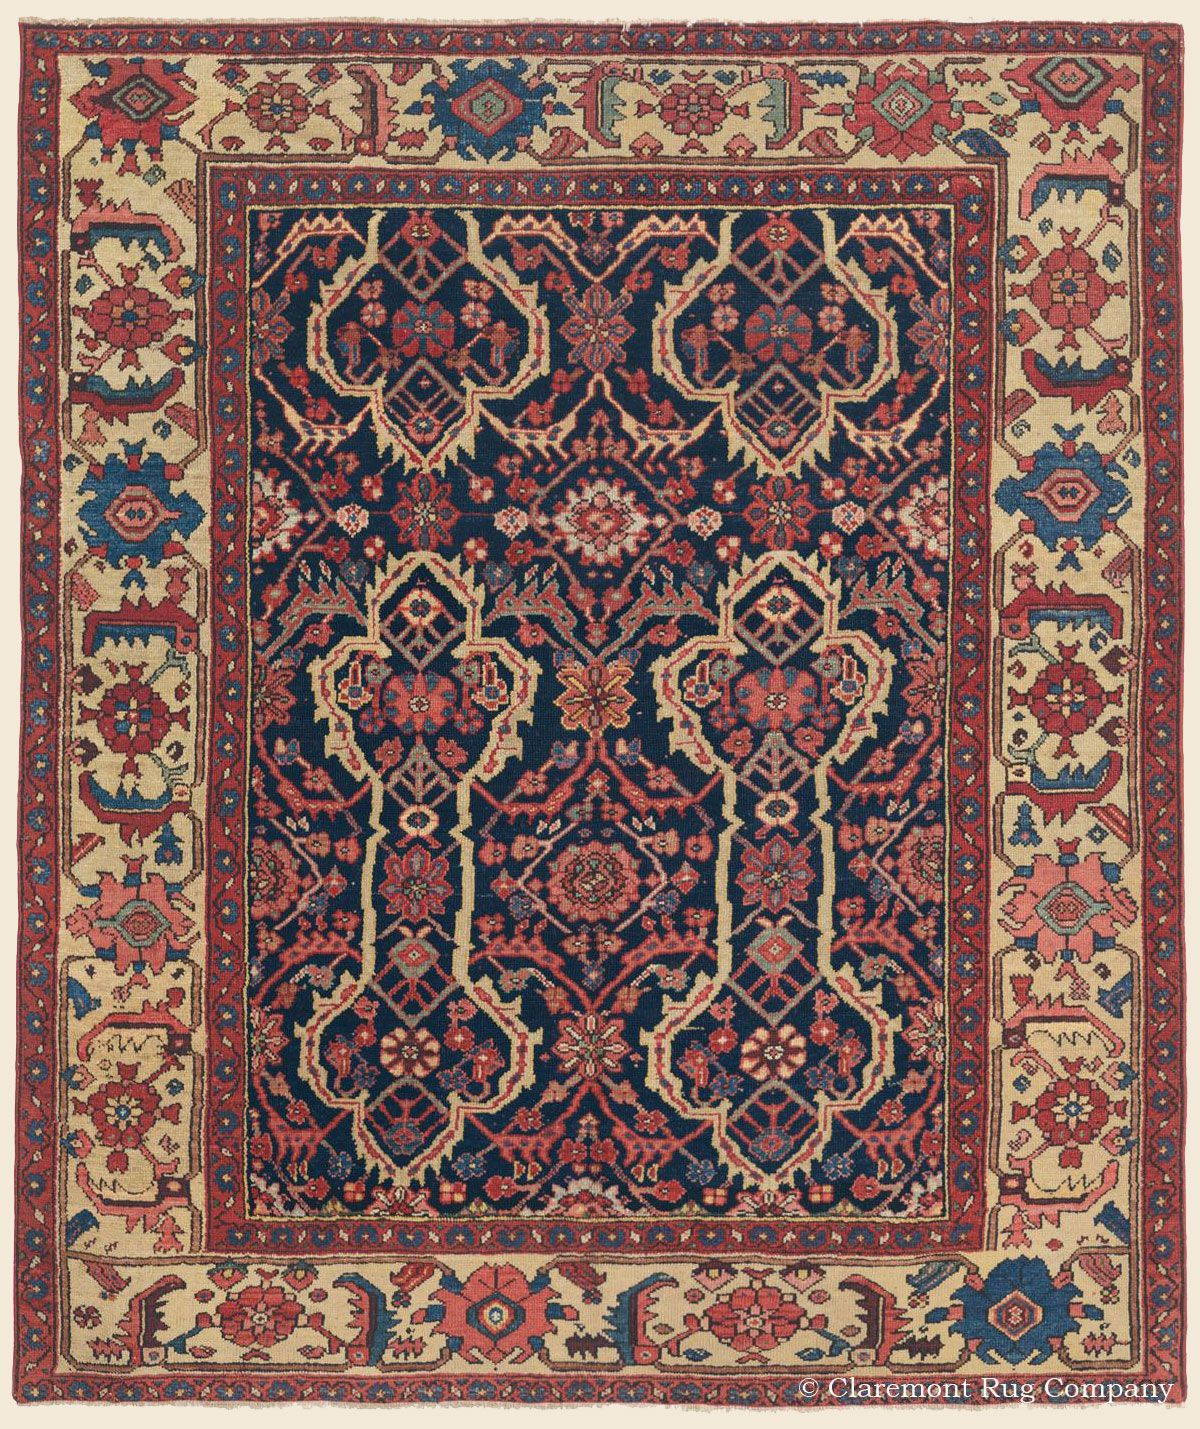 Exquisite 19th & Early 20th Century Rugs. From Tribal Rugs